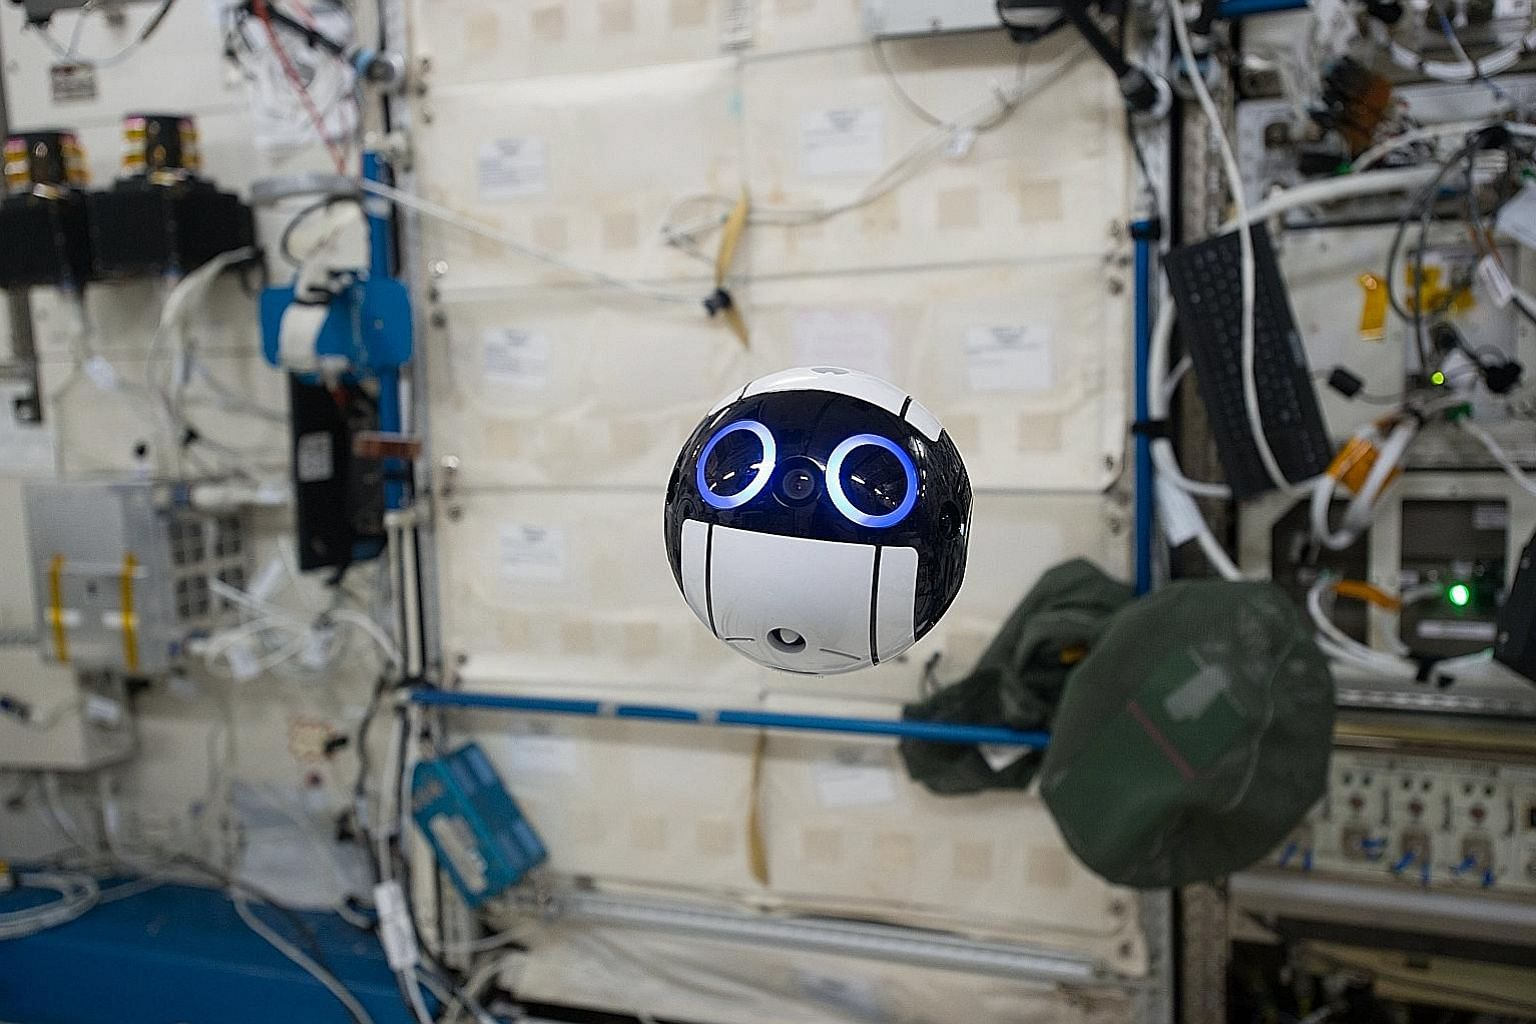 """A handout photo issued yesterday showing the JEM Internal Ball Camera or """"Int-Ball"""" taking a video on the International Space Station (ISS) last month. The Int-Ball was delivered to the Japanese Experiment Module, nicknamed Kibo, on the ISS on June 4"""